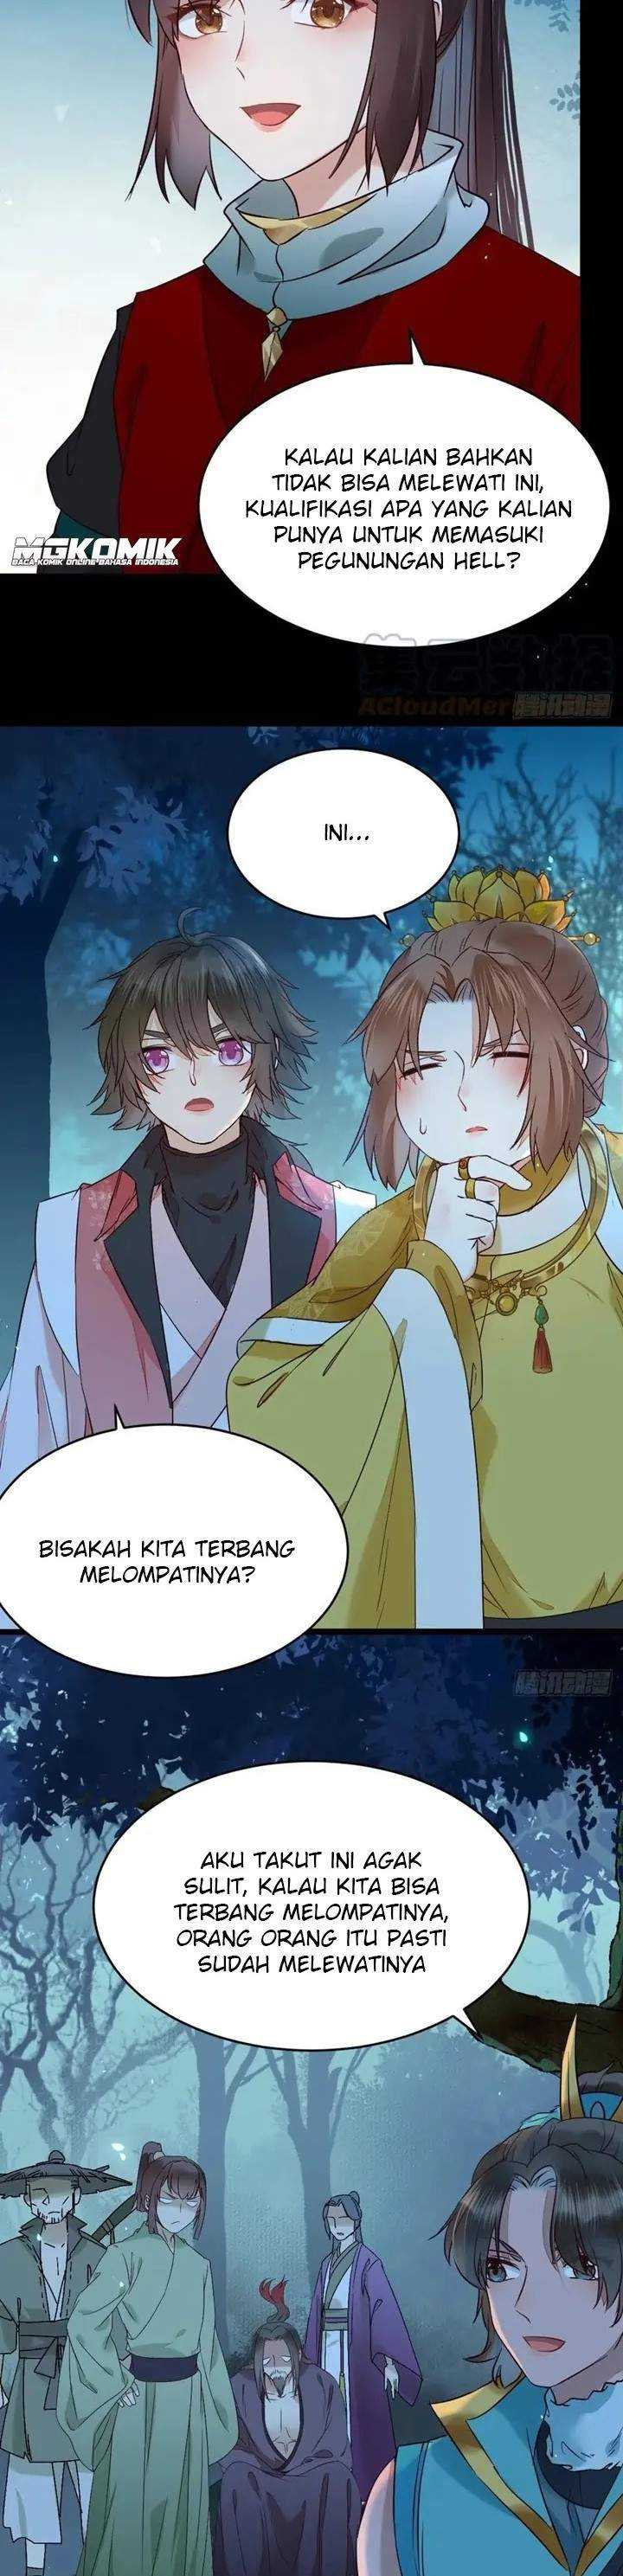 The Ghostly Doctor Chapter 397